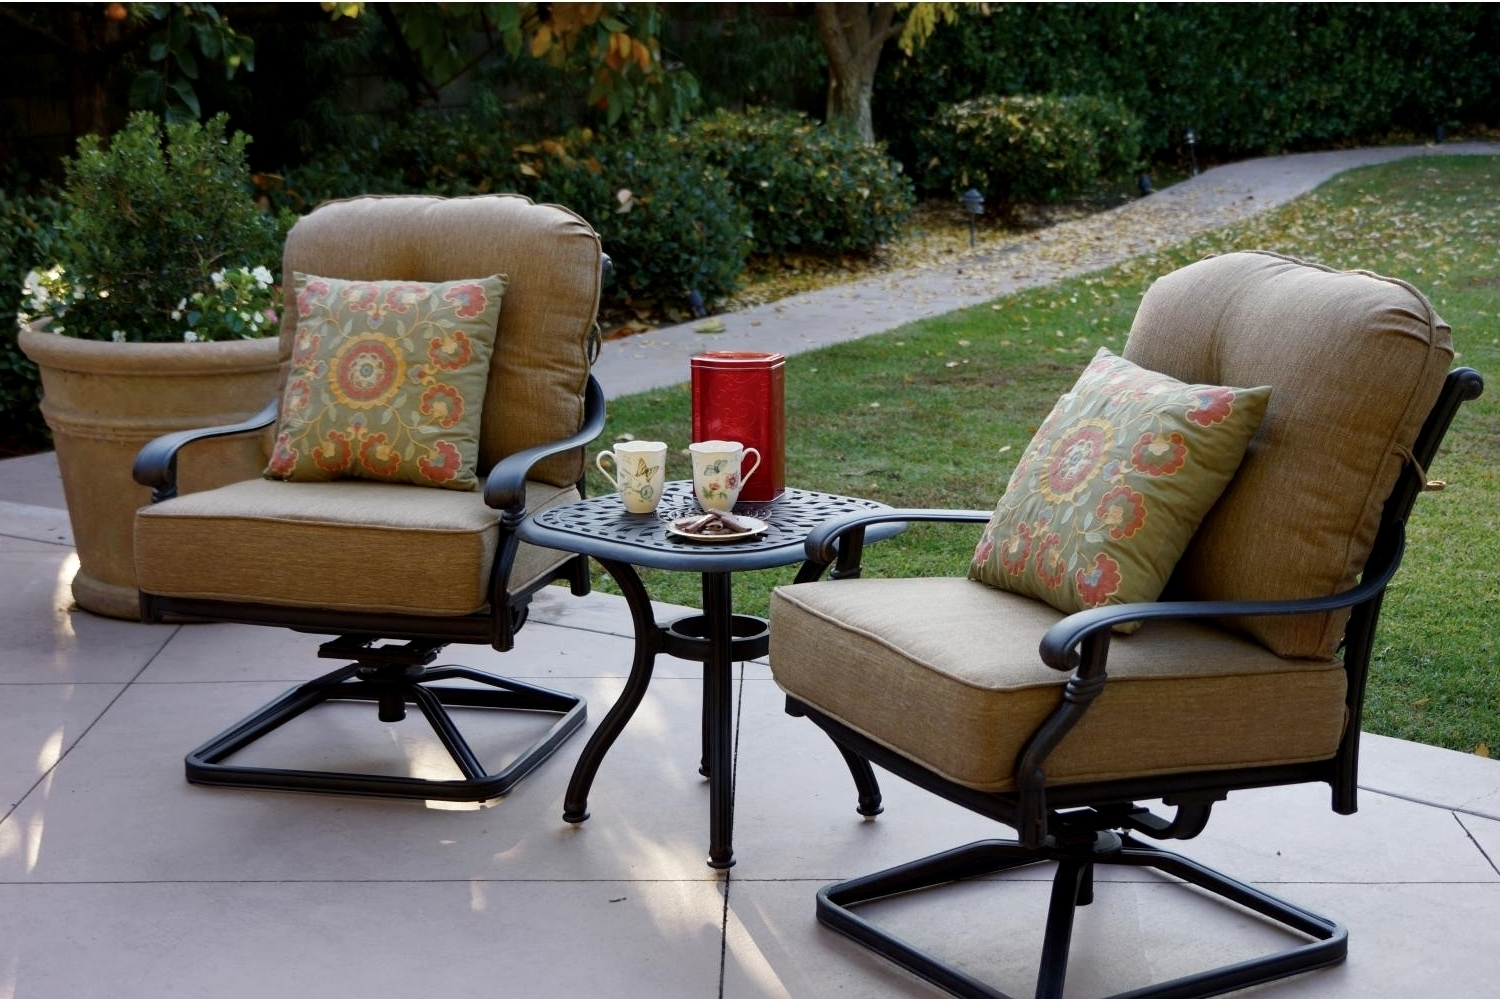 Patio Furniture Cast Aluminum Deep Seating Rocker Set Swivel Club With Regard To Most Recently Released Patio Rocking Chairs Sets (View 14 of 20)